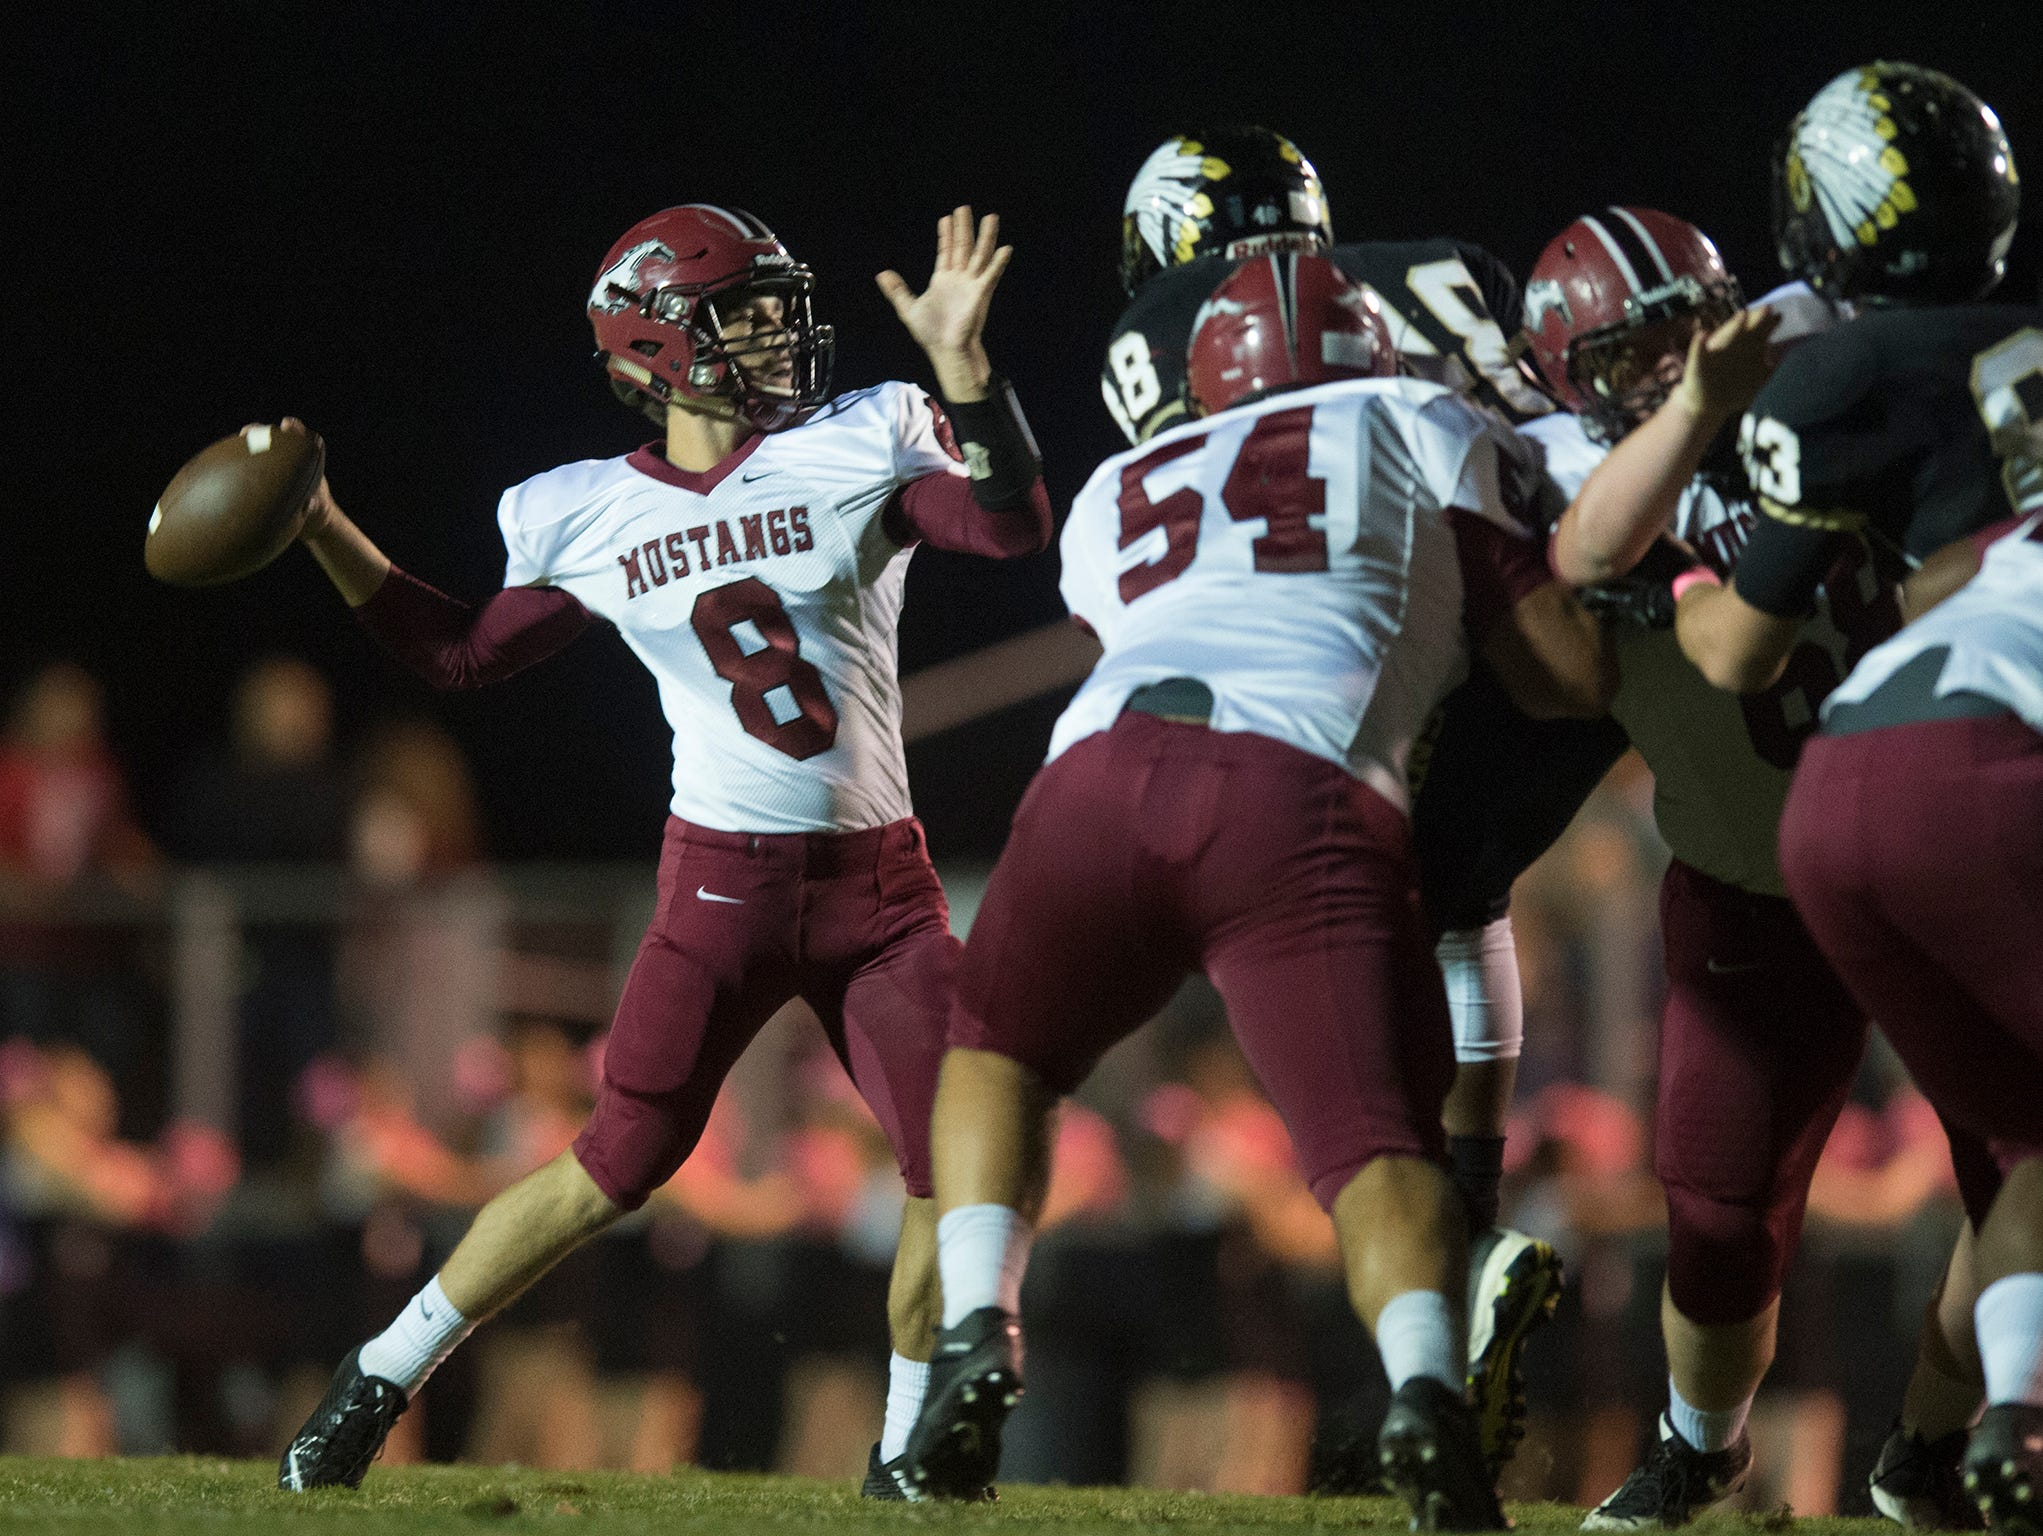 Stanhope's Tanner Anderson throws a pass during the game on Friday, Oct. 2, 2015, in Wetumpka, Ala.